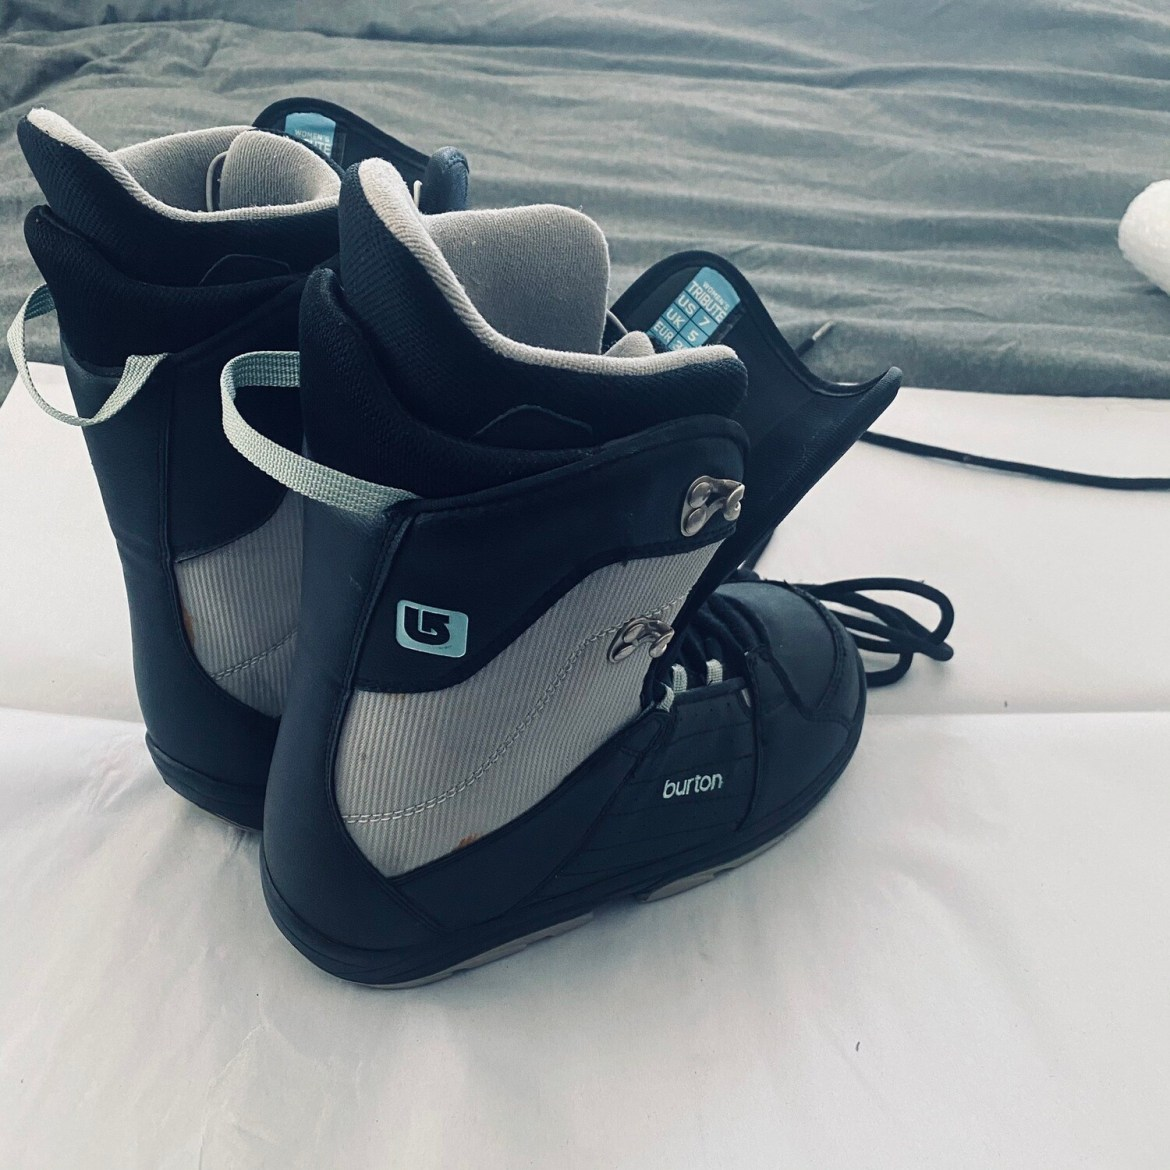 BURTON WOMENS SIZE 7 TRIBUTE SNOWBOARD BOOTS BLACK LACED GOOD CONDITION